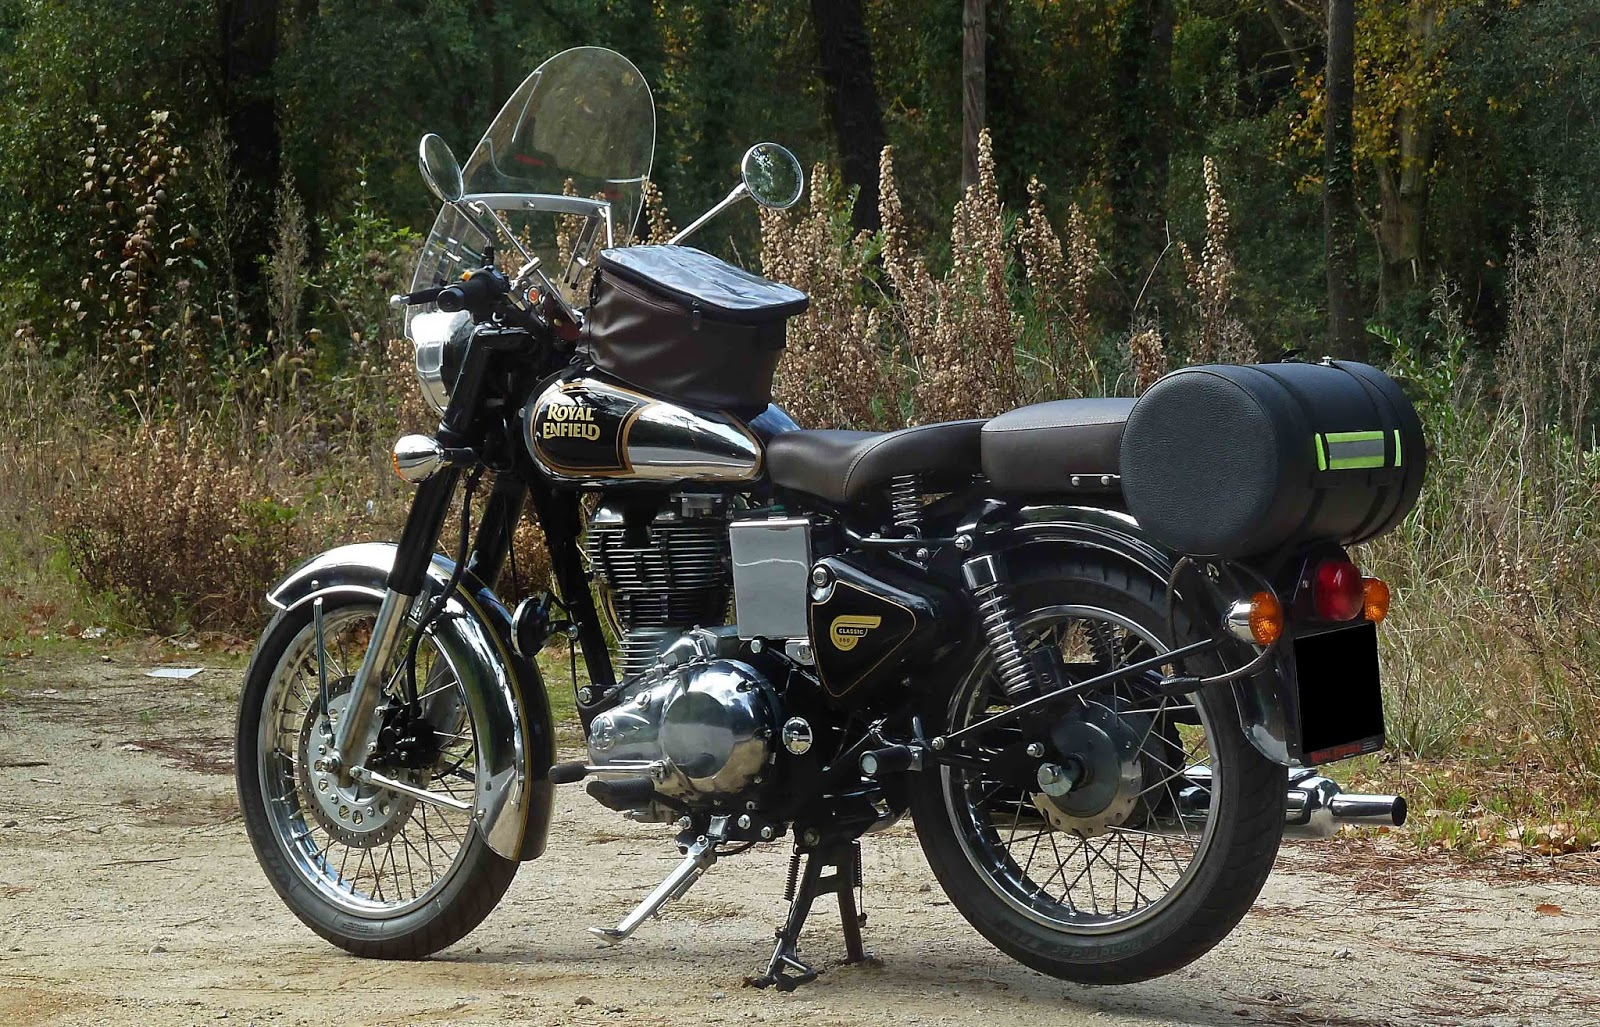 Royal Enfield Bullet 500 Trial Trail 2009 images #127405